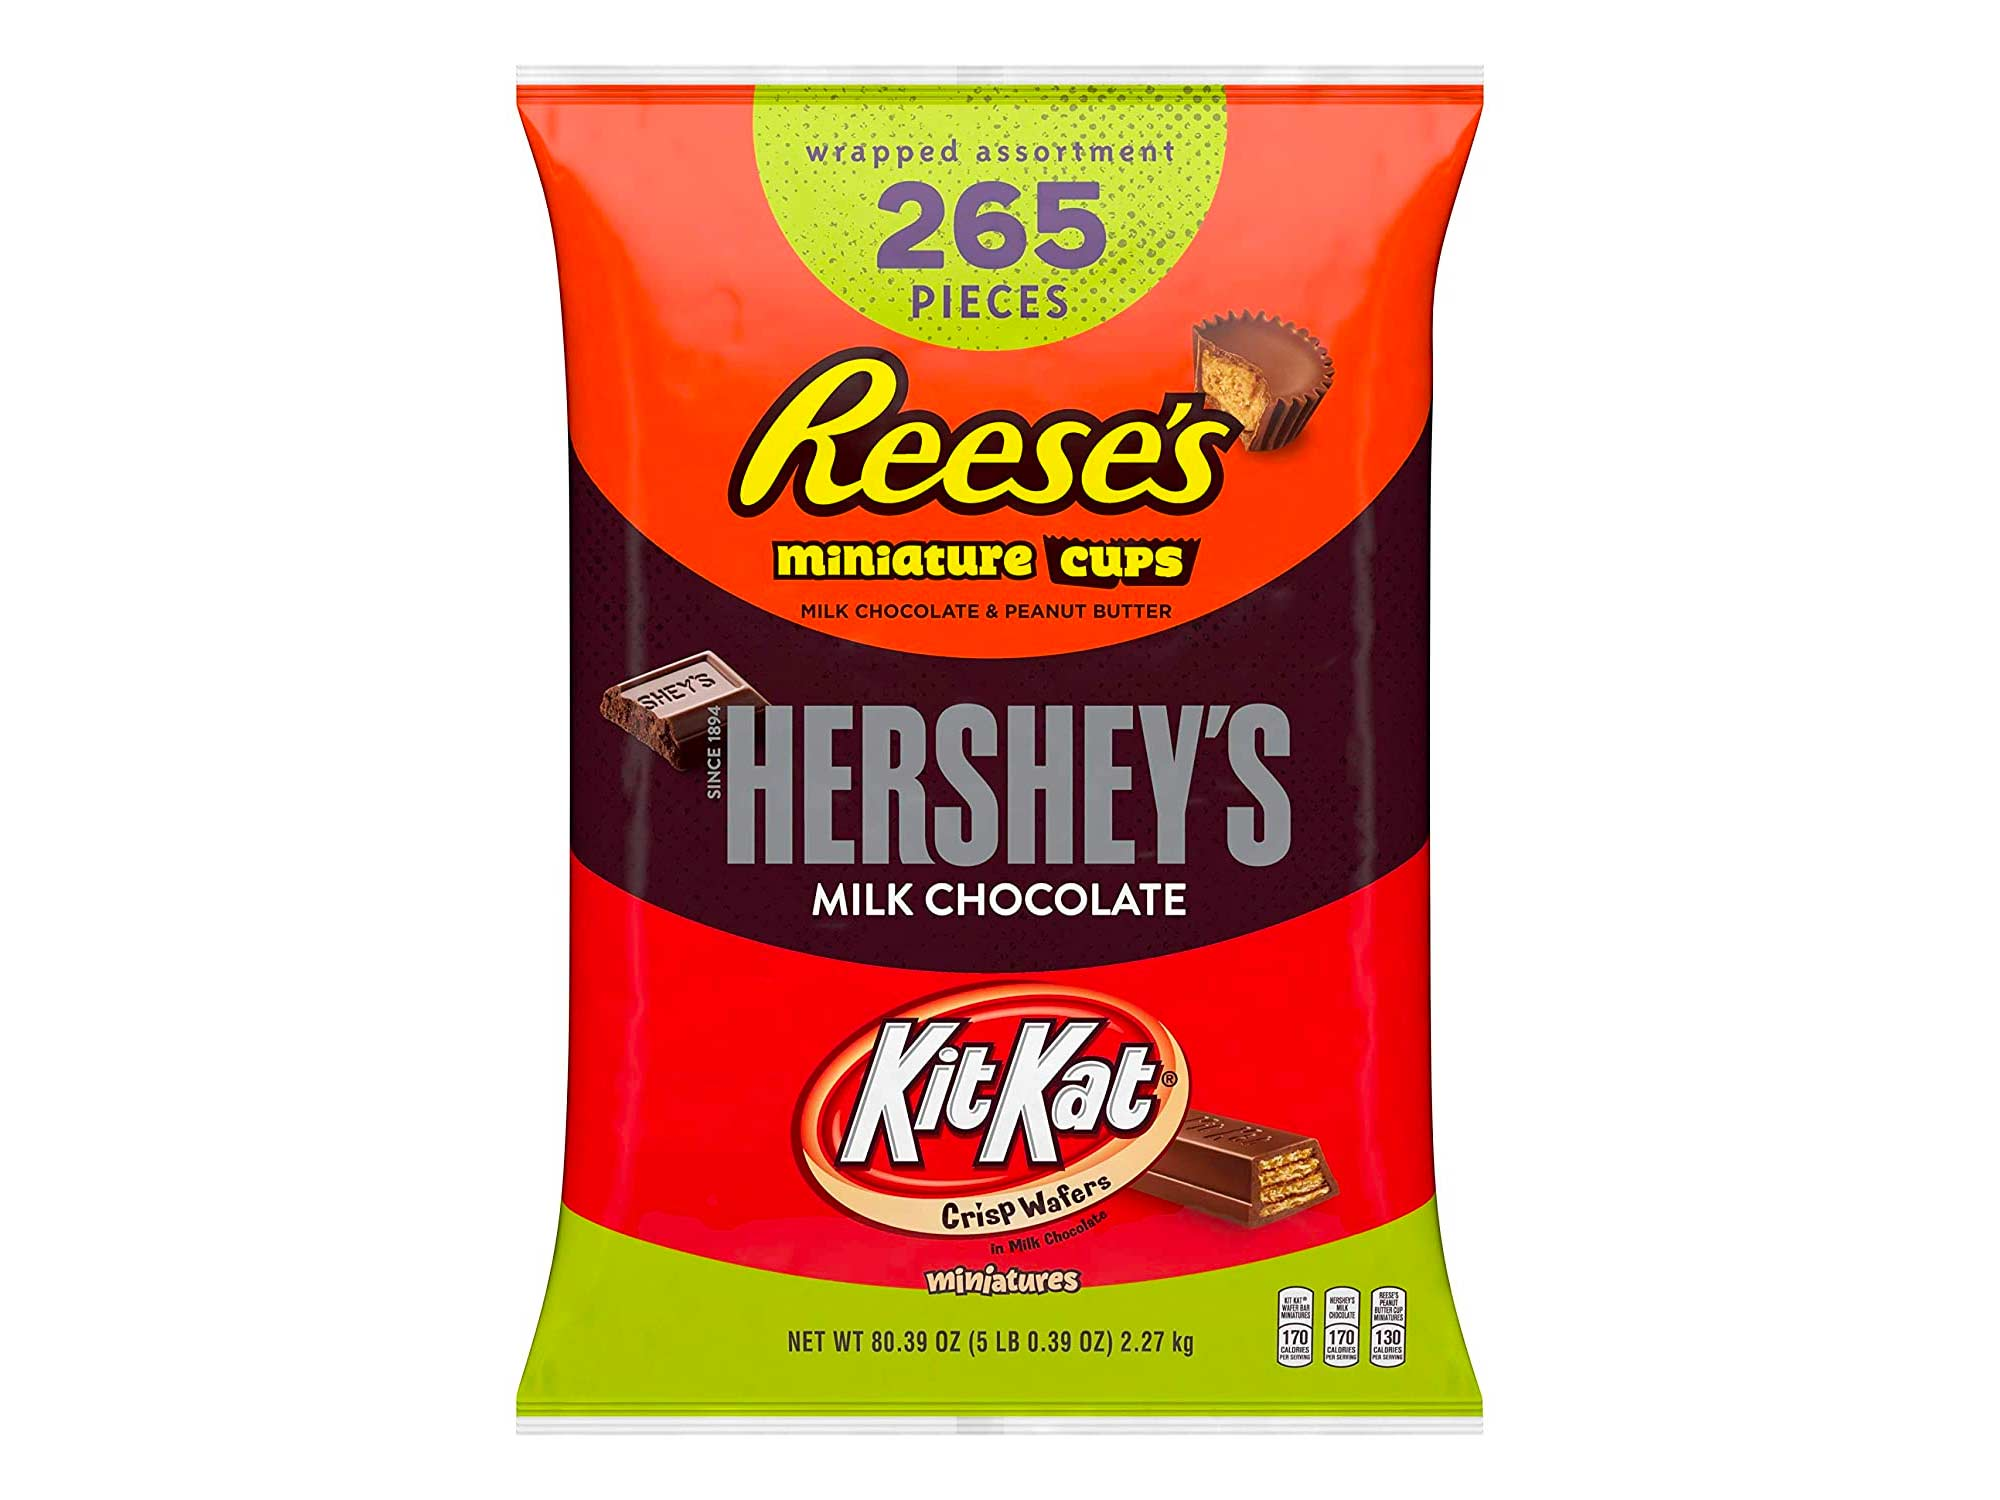 Hershey's, Kit Kat, & Reese's Bulk Halloween Chocolate Candy Variety Pack, Ships With Cool Packs, 5 Pounds, Fun Size, 265 Pieces